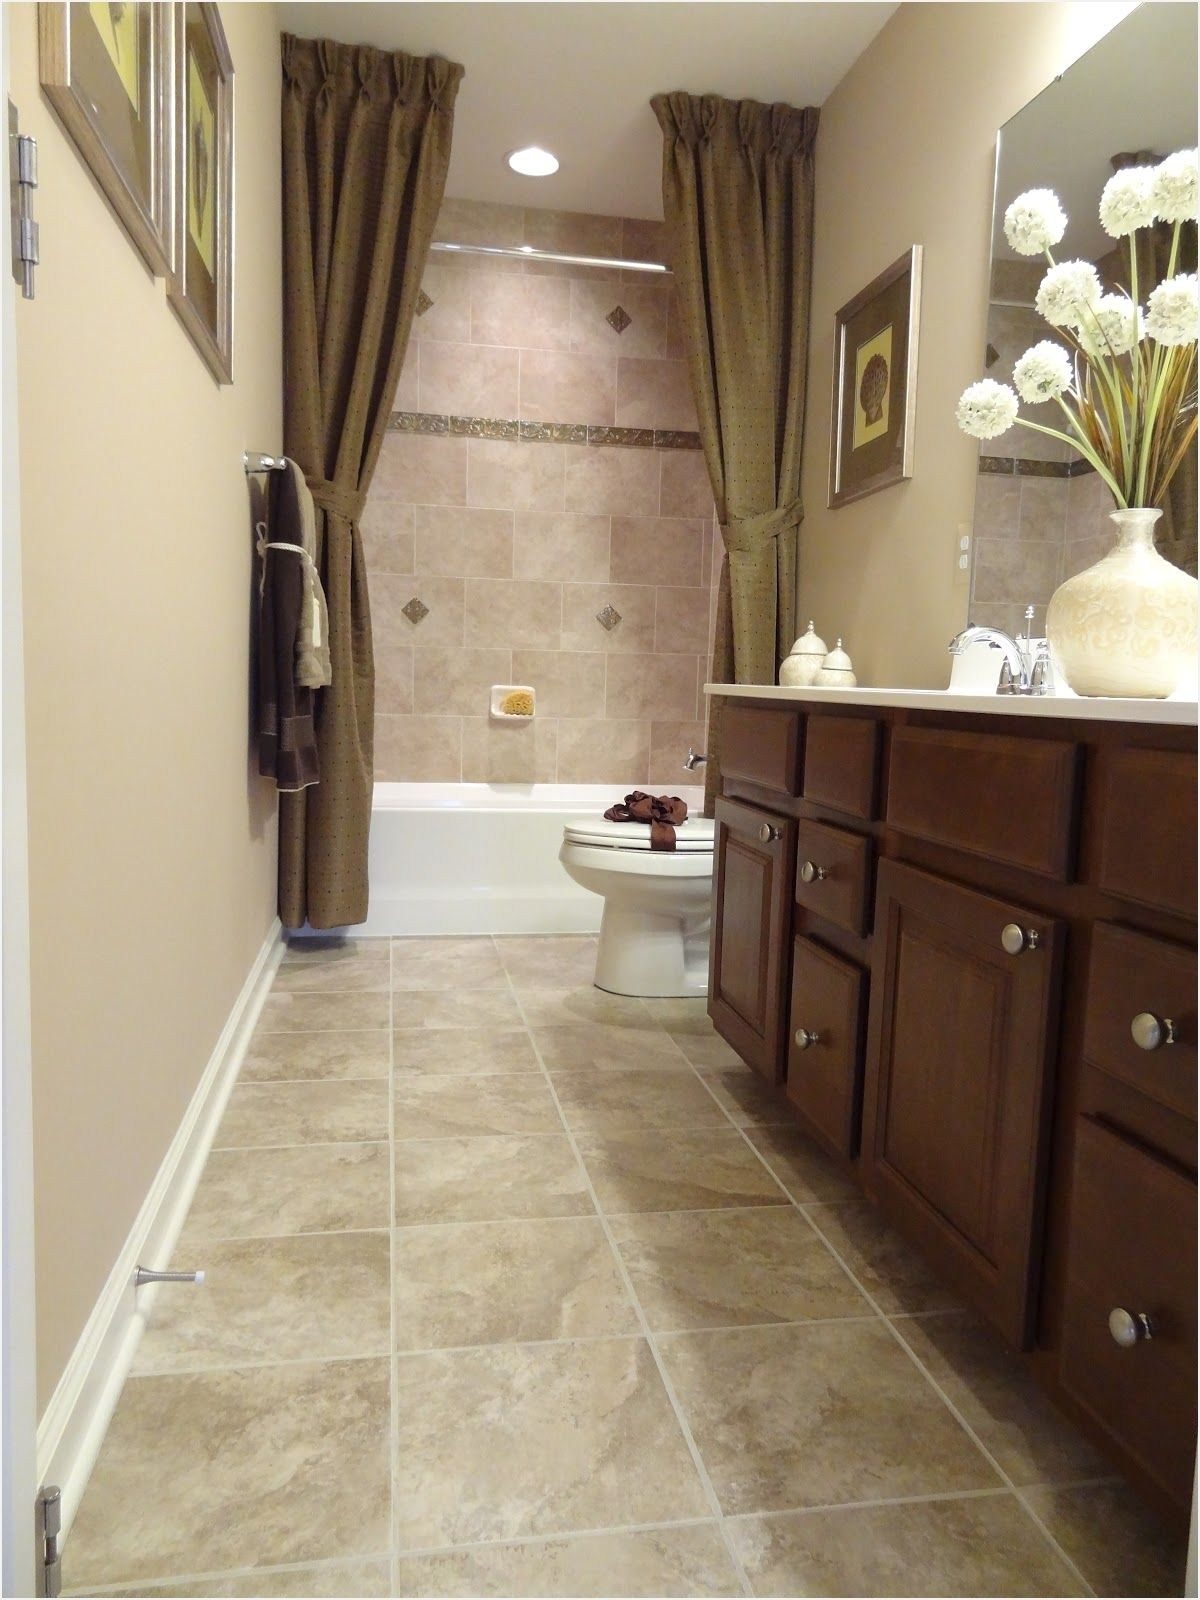 small full bathroom remodel ideas 41 awesome small full bathroom remodel ideas small full bathroom long narrow bathroom small 7289